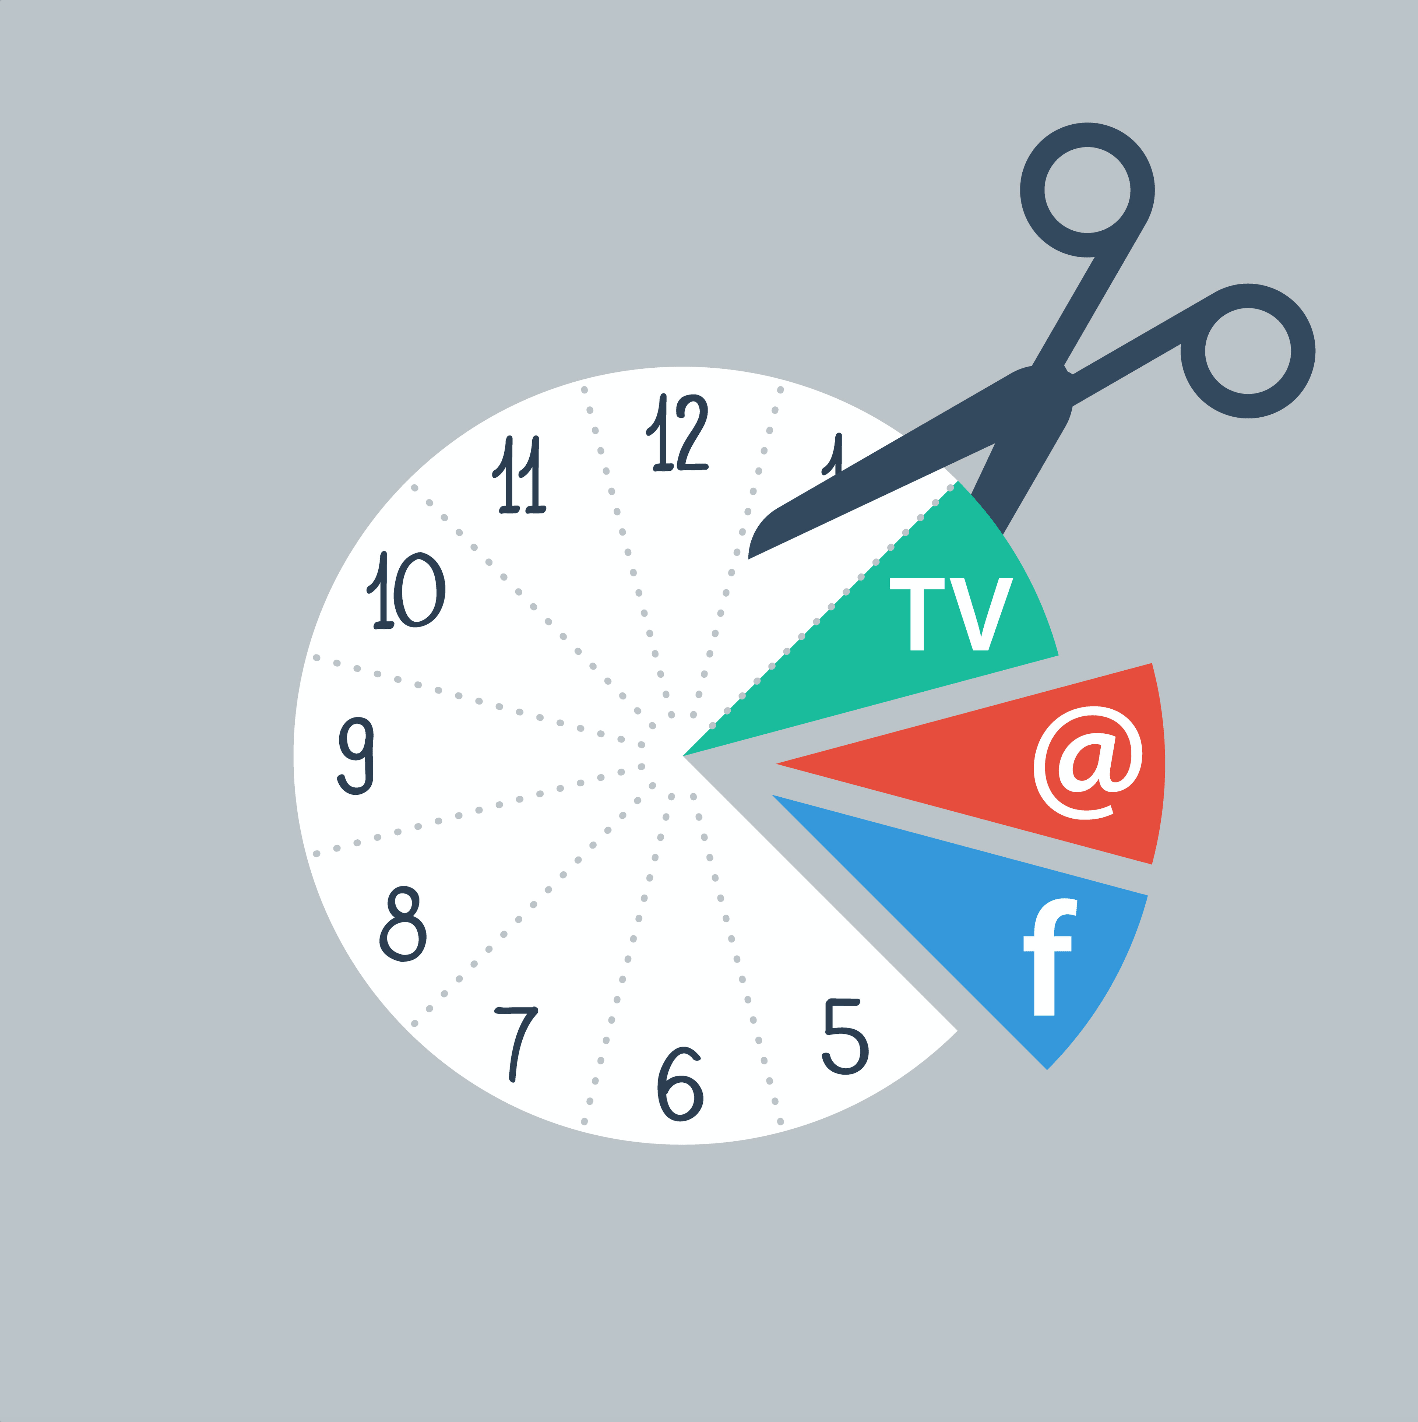 How much time is spent on Social Media